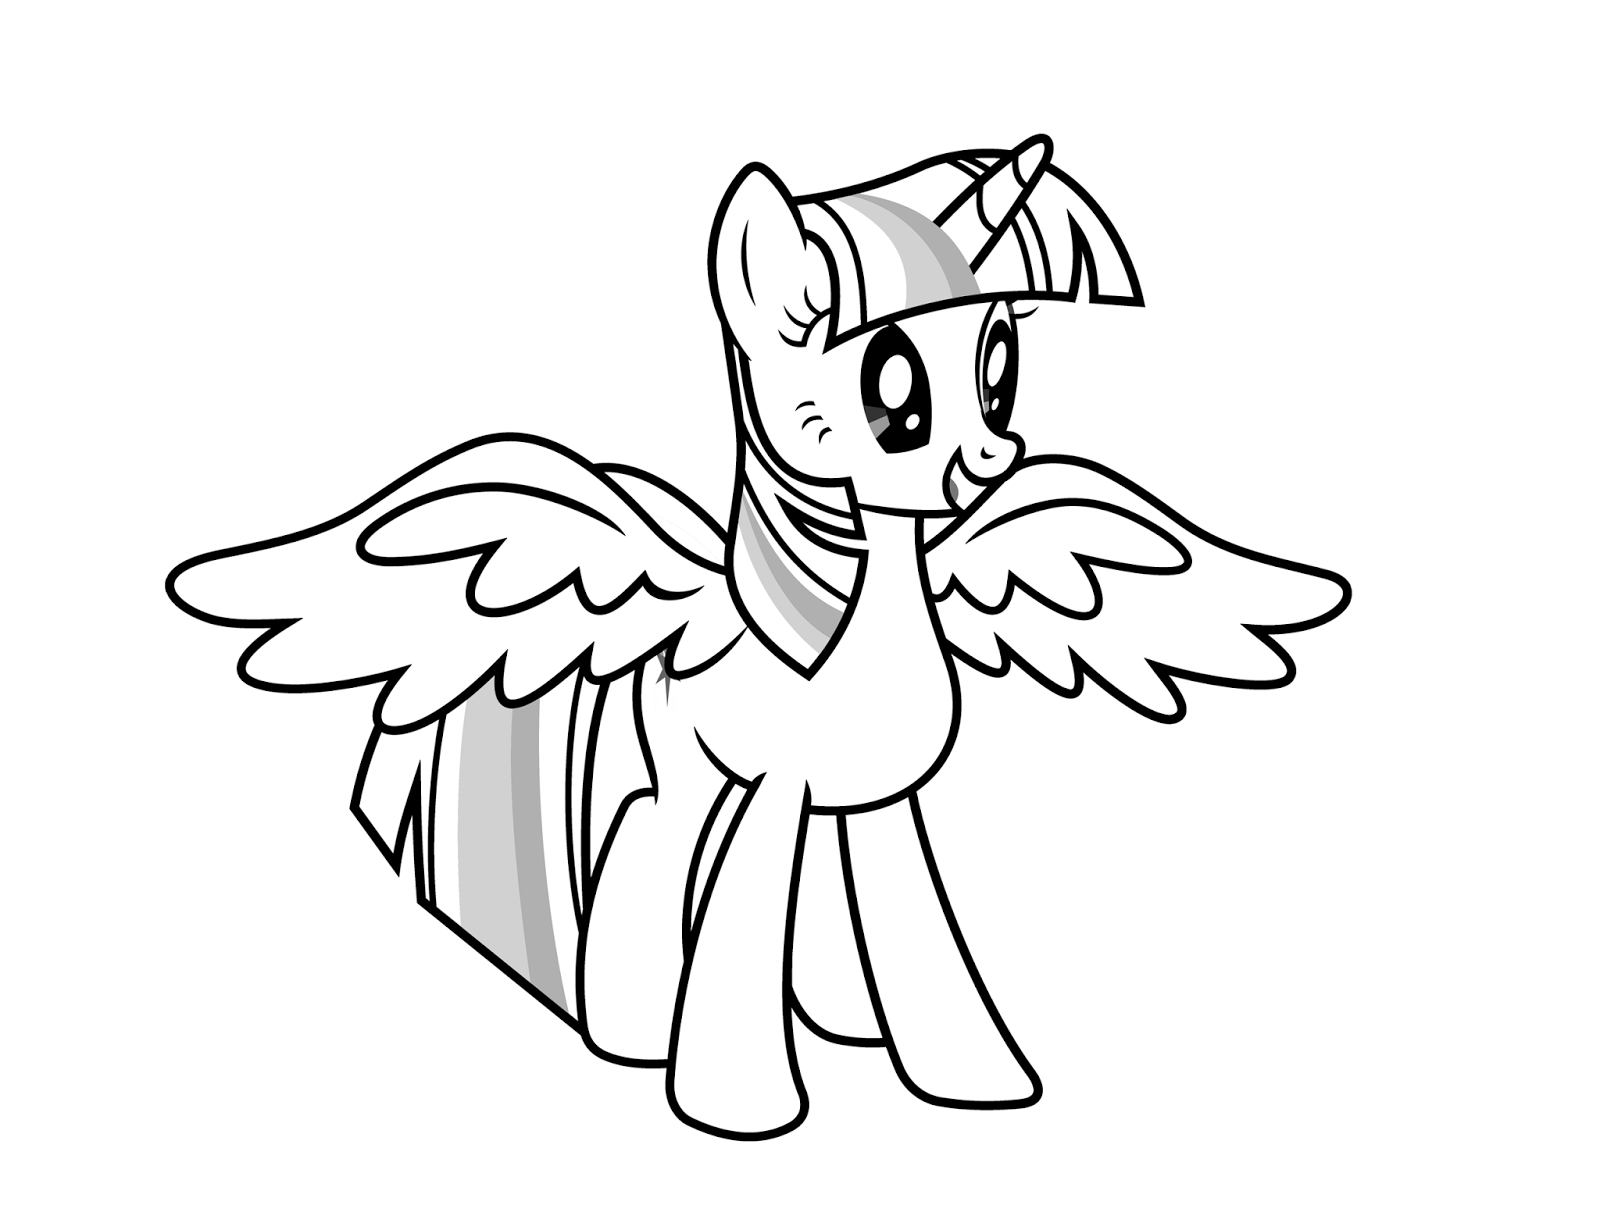 twilight sparkle colouring pages twilight sparkle coloring pages best coloring pages for kids twilight pages sparkle colouring